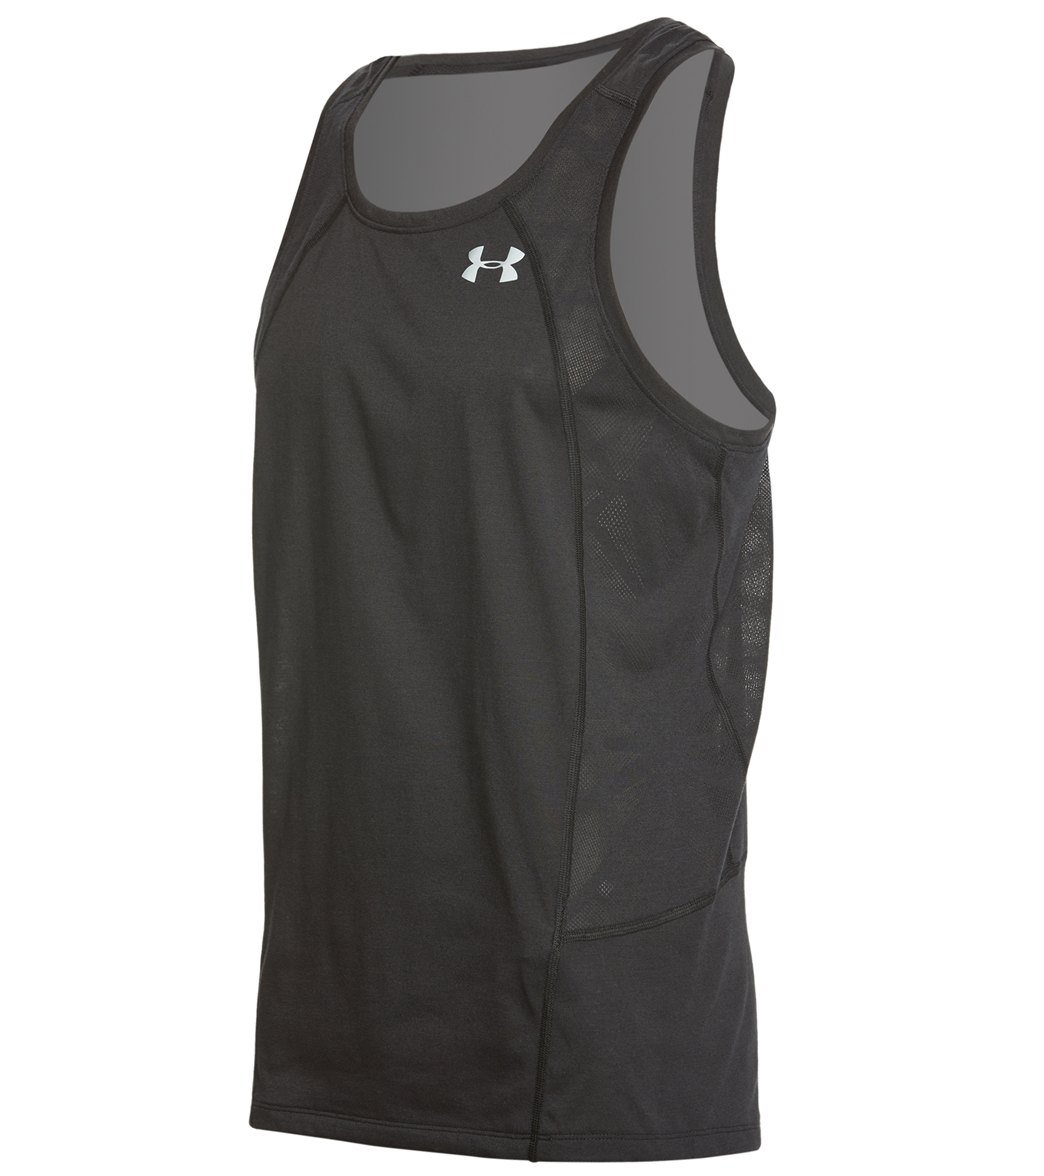 cacdd24870e9a Under Armour Men s Threadborne Swyft Singlet at SwimOutlet.com